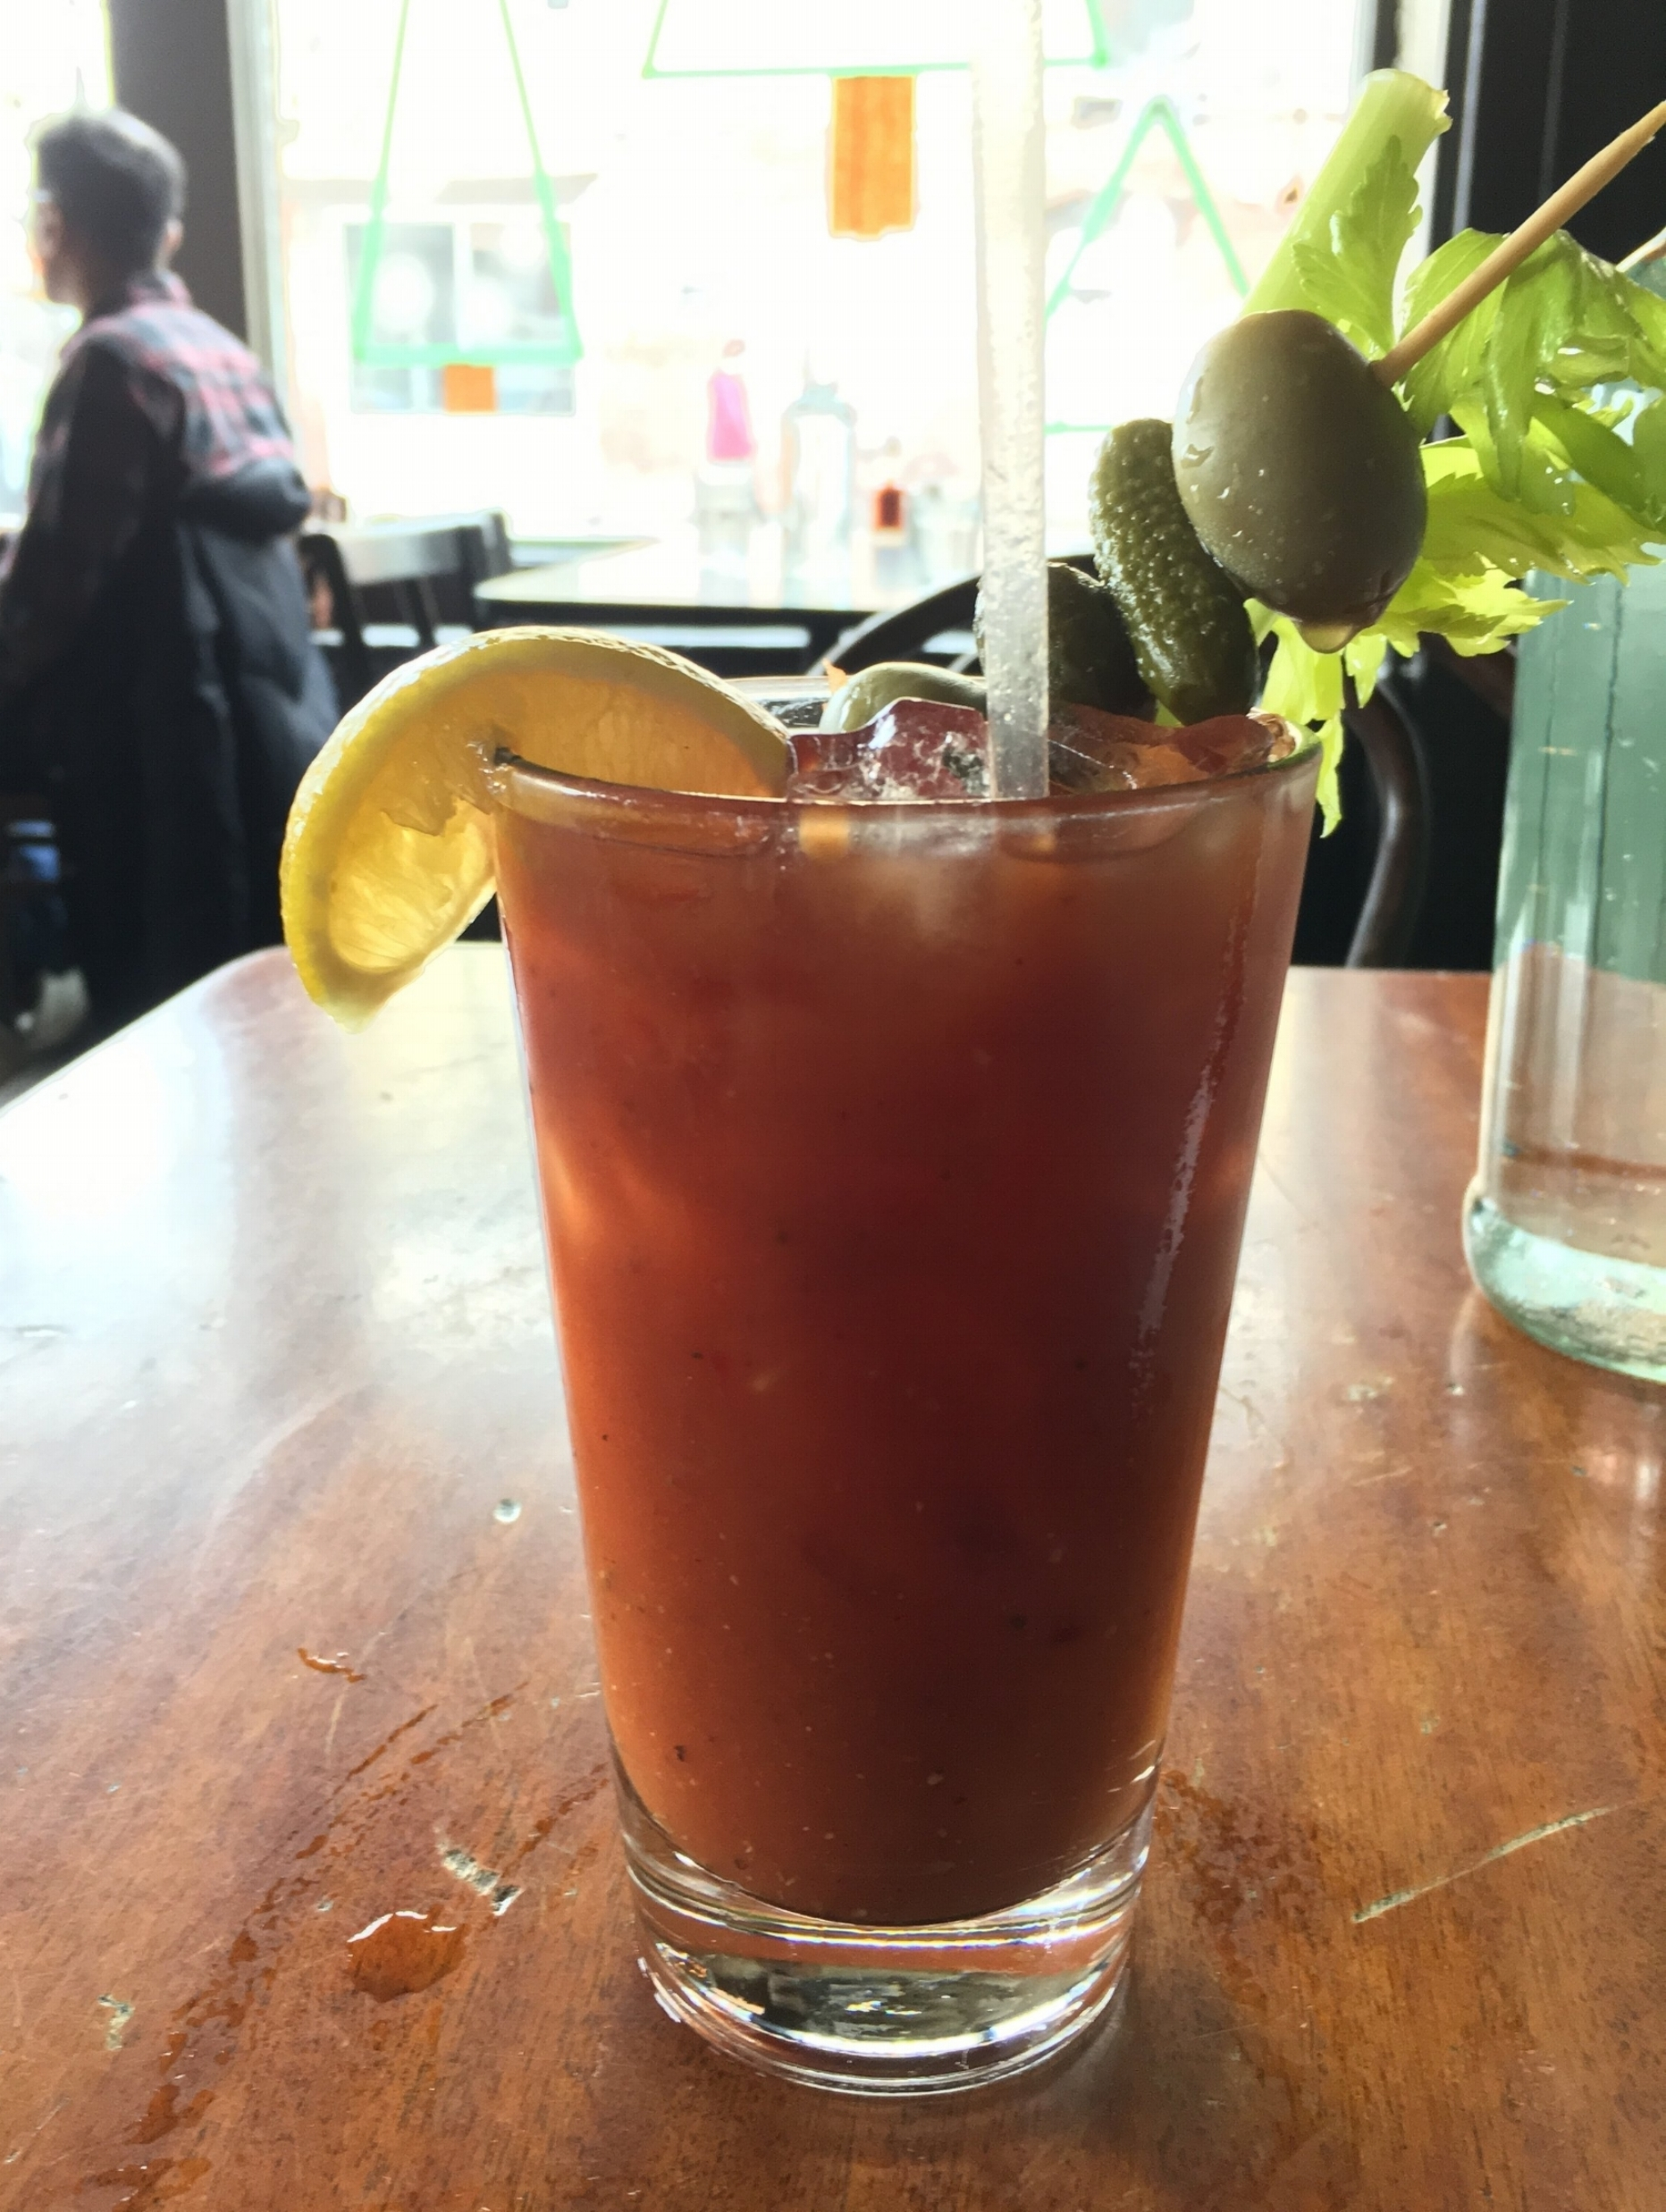 Brunch  Brunch is de rigeuer on the weekend and the weekdays for those so lucky. Have a Bloody Mary or a Champagne cocktail to go with your sweet or savory tastes. Whether you want to feast or just nibble and sip it's a win win situation.